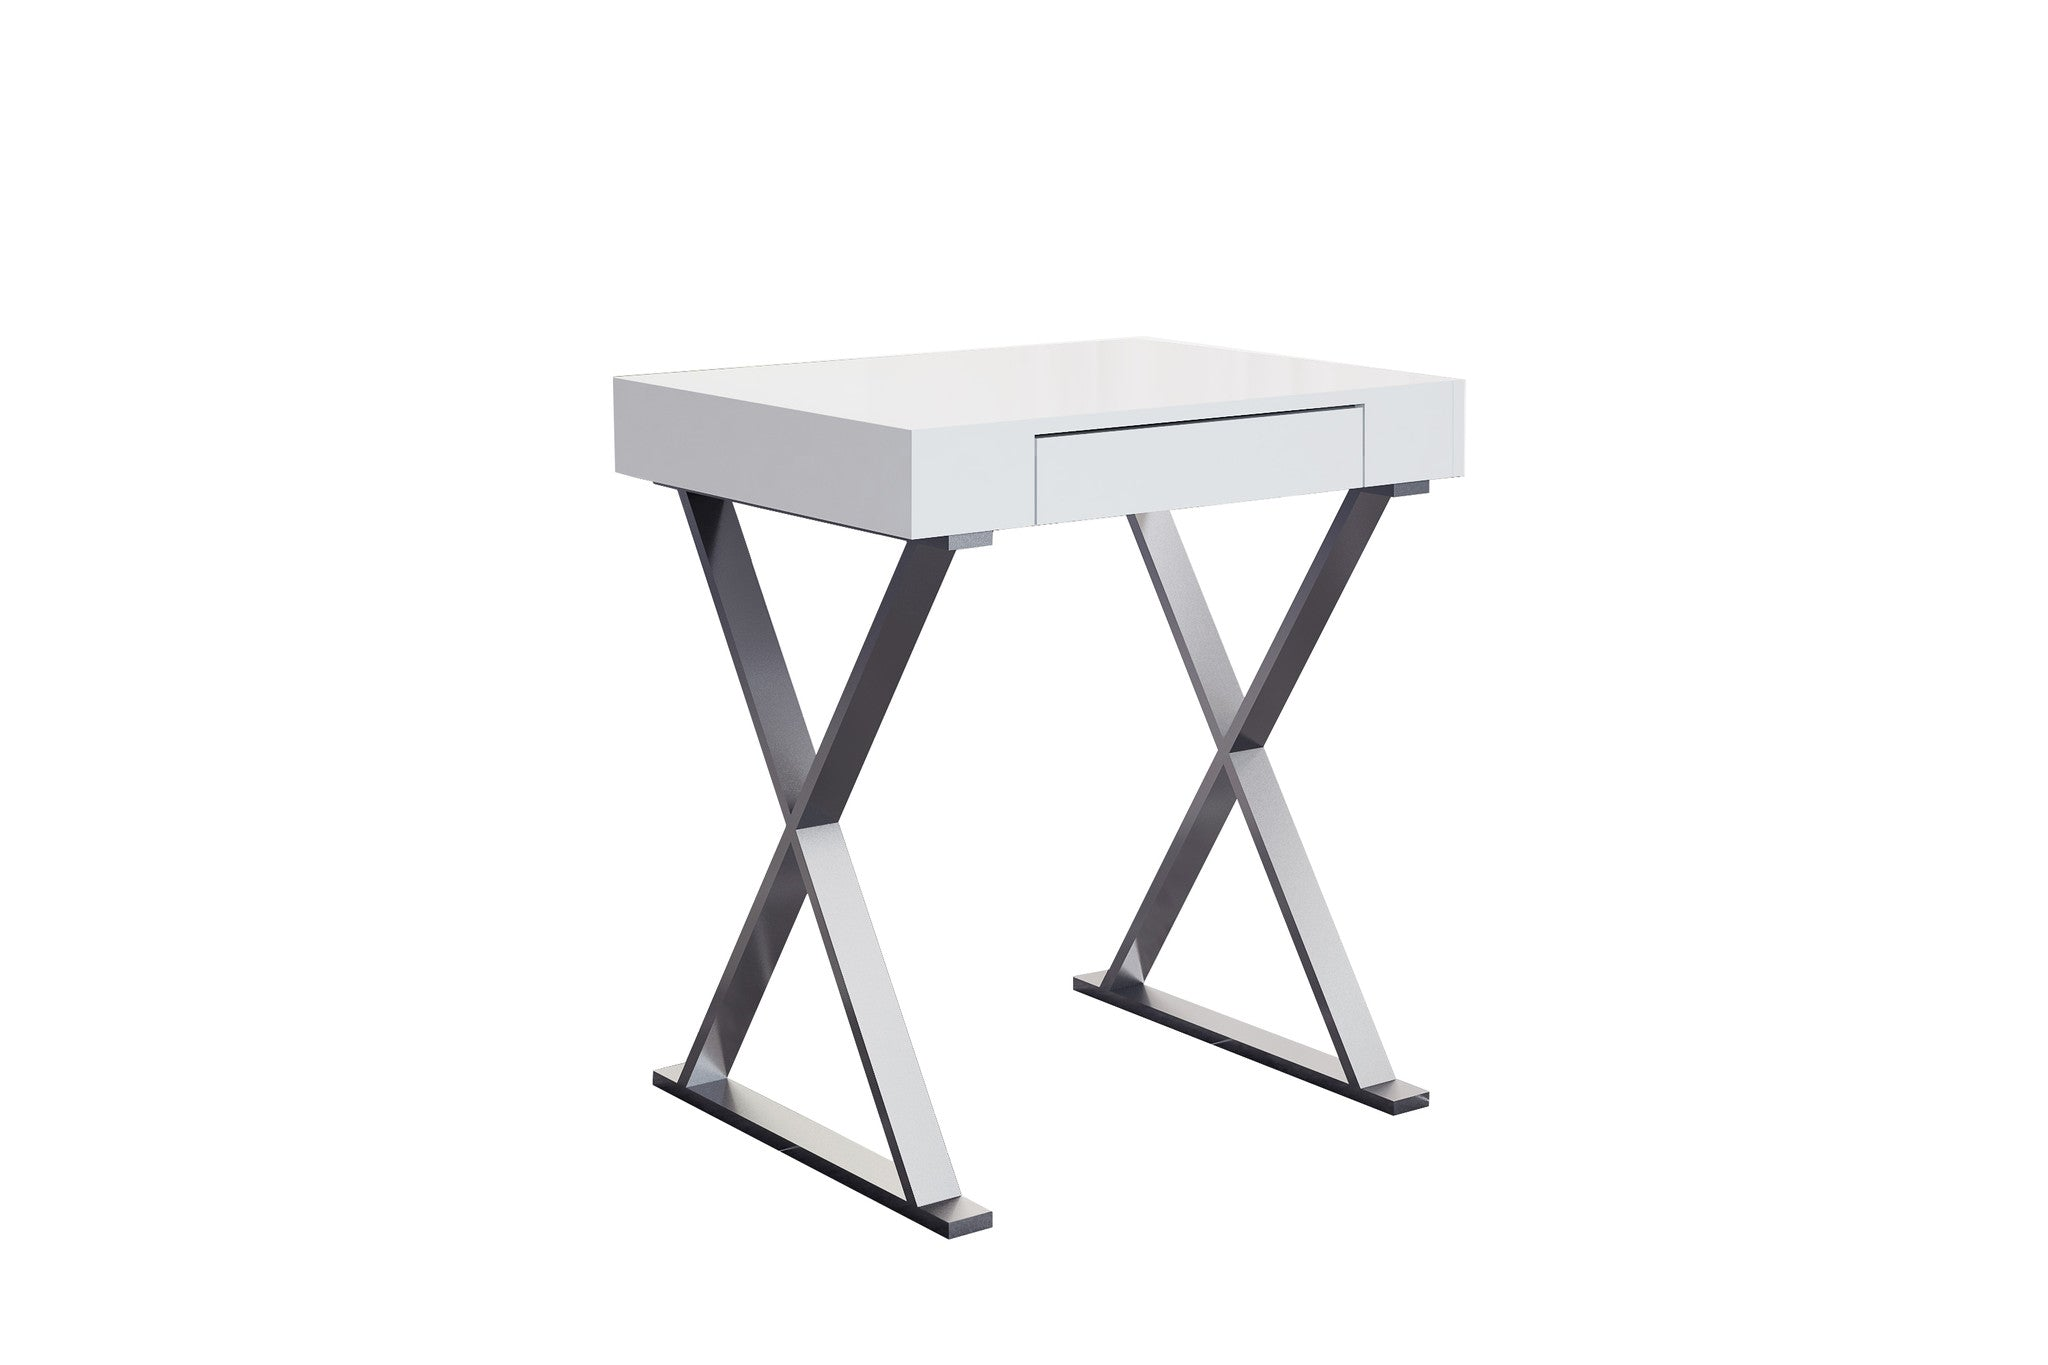 on wooden white v furniture chrome with legs desk splendid shape design modern office idea home flooring contemporary simple ideas board